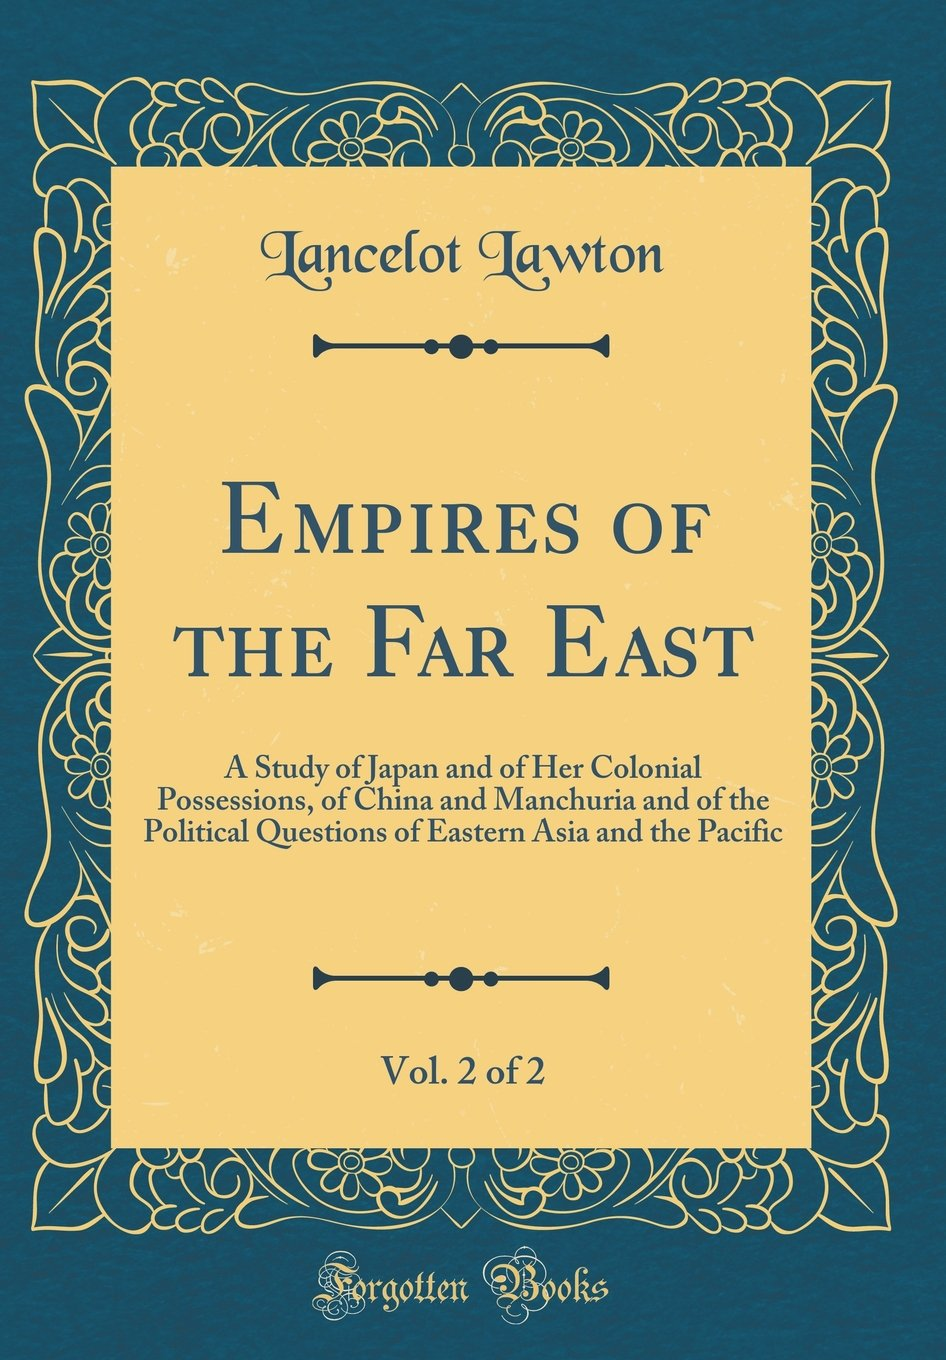 Download Empires of the Far East, Vol. 2 of 2: A Study of Japan and of Her Colonial Possessions, of China and Manchuria and of the Political Questions of Eastern Asia and the Pacific (Classic Reprint) ebook